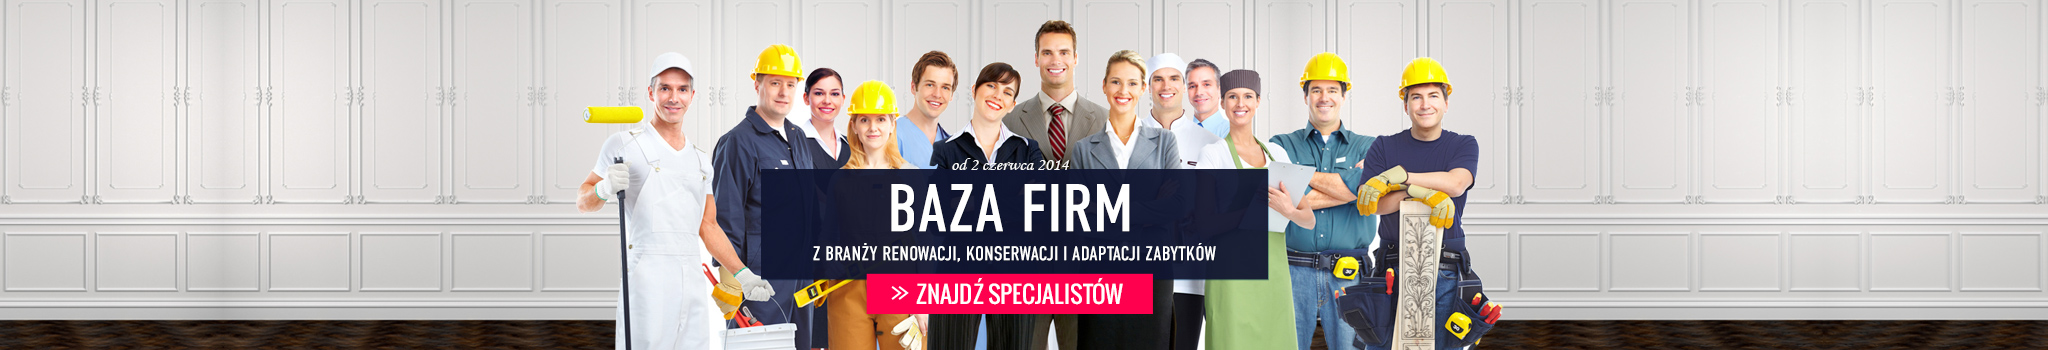 slajder-baza-firm_start3